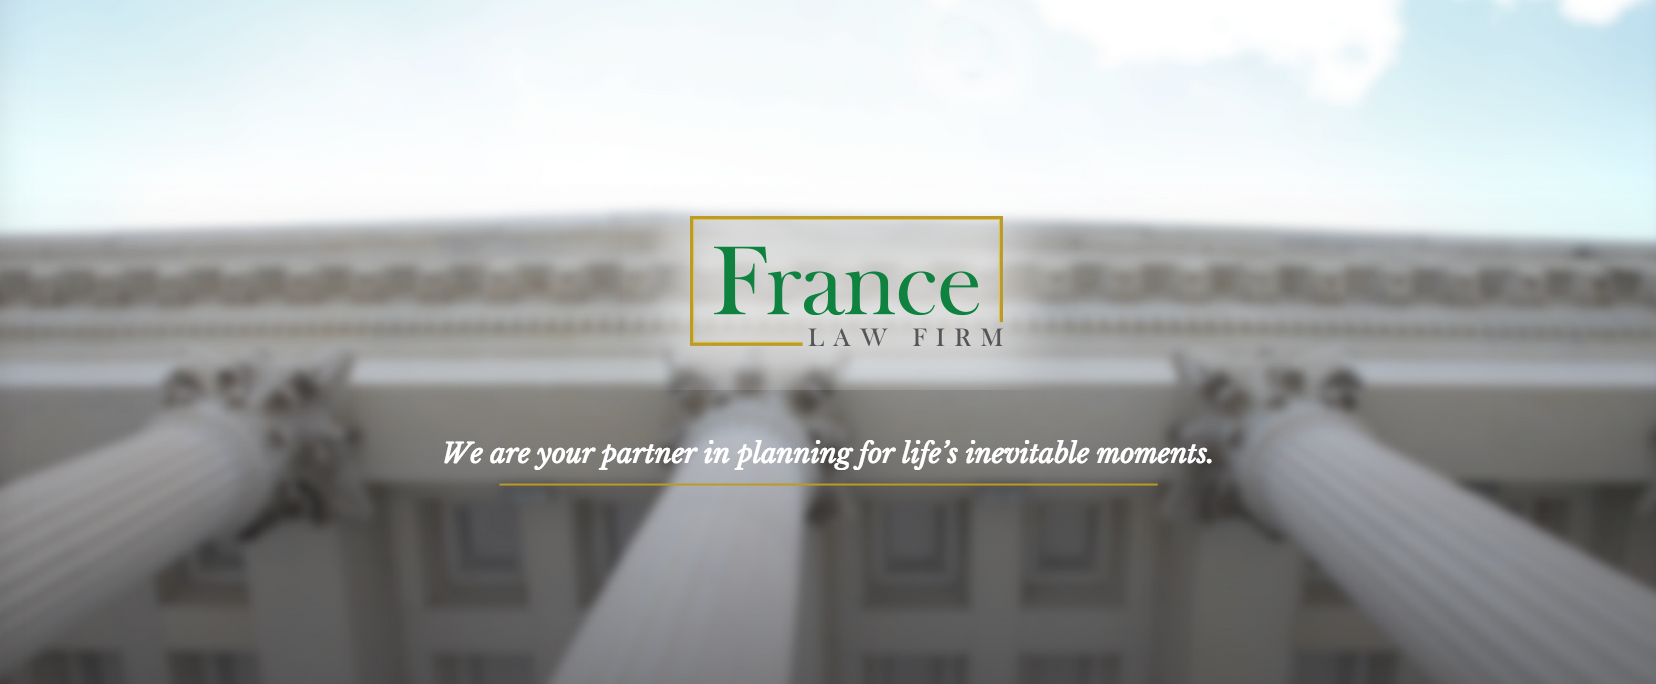 France Law Firm